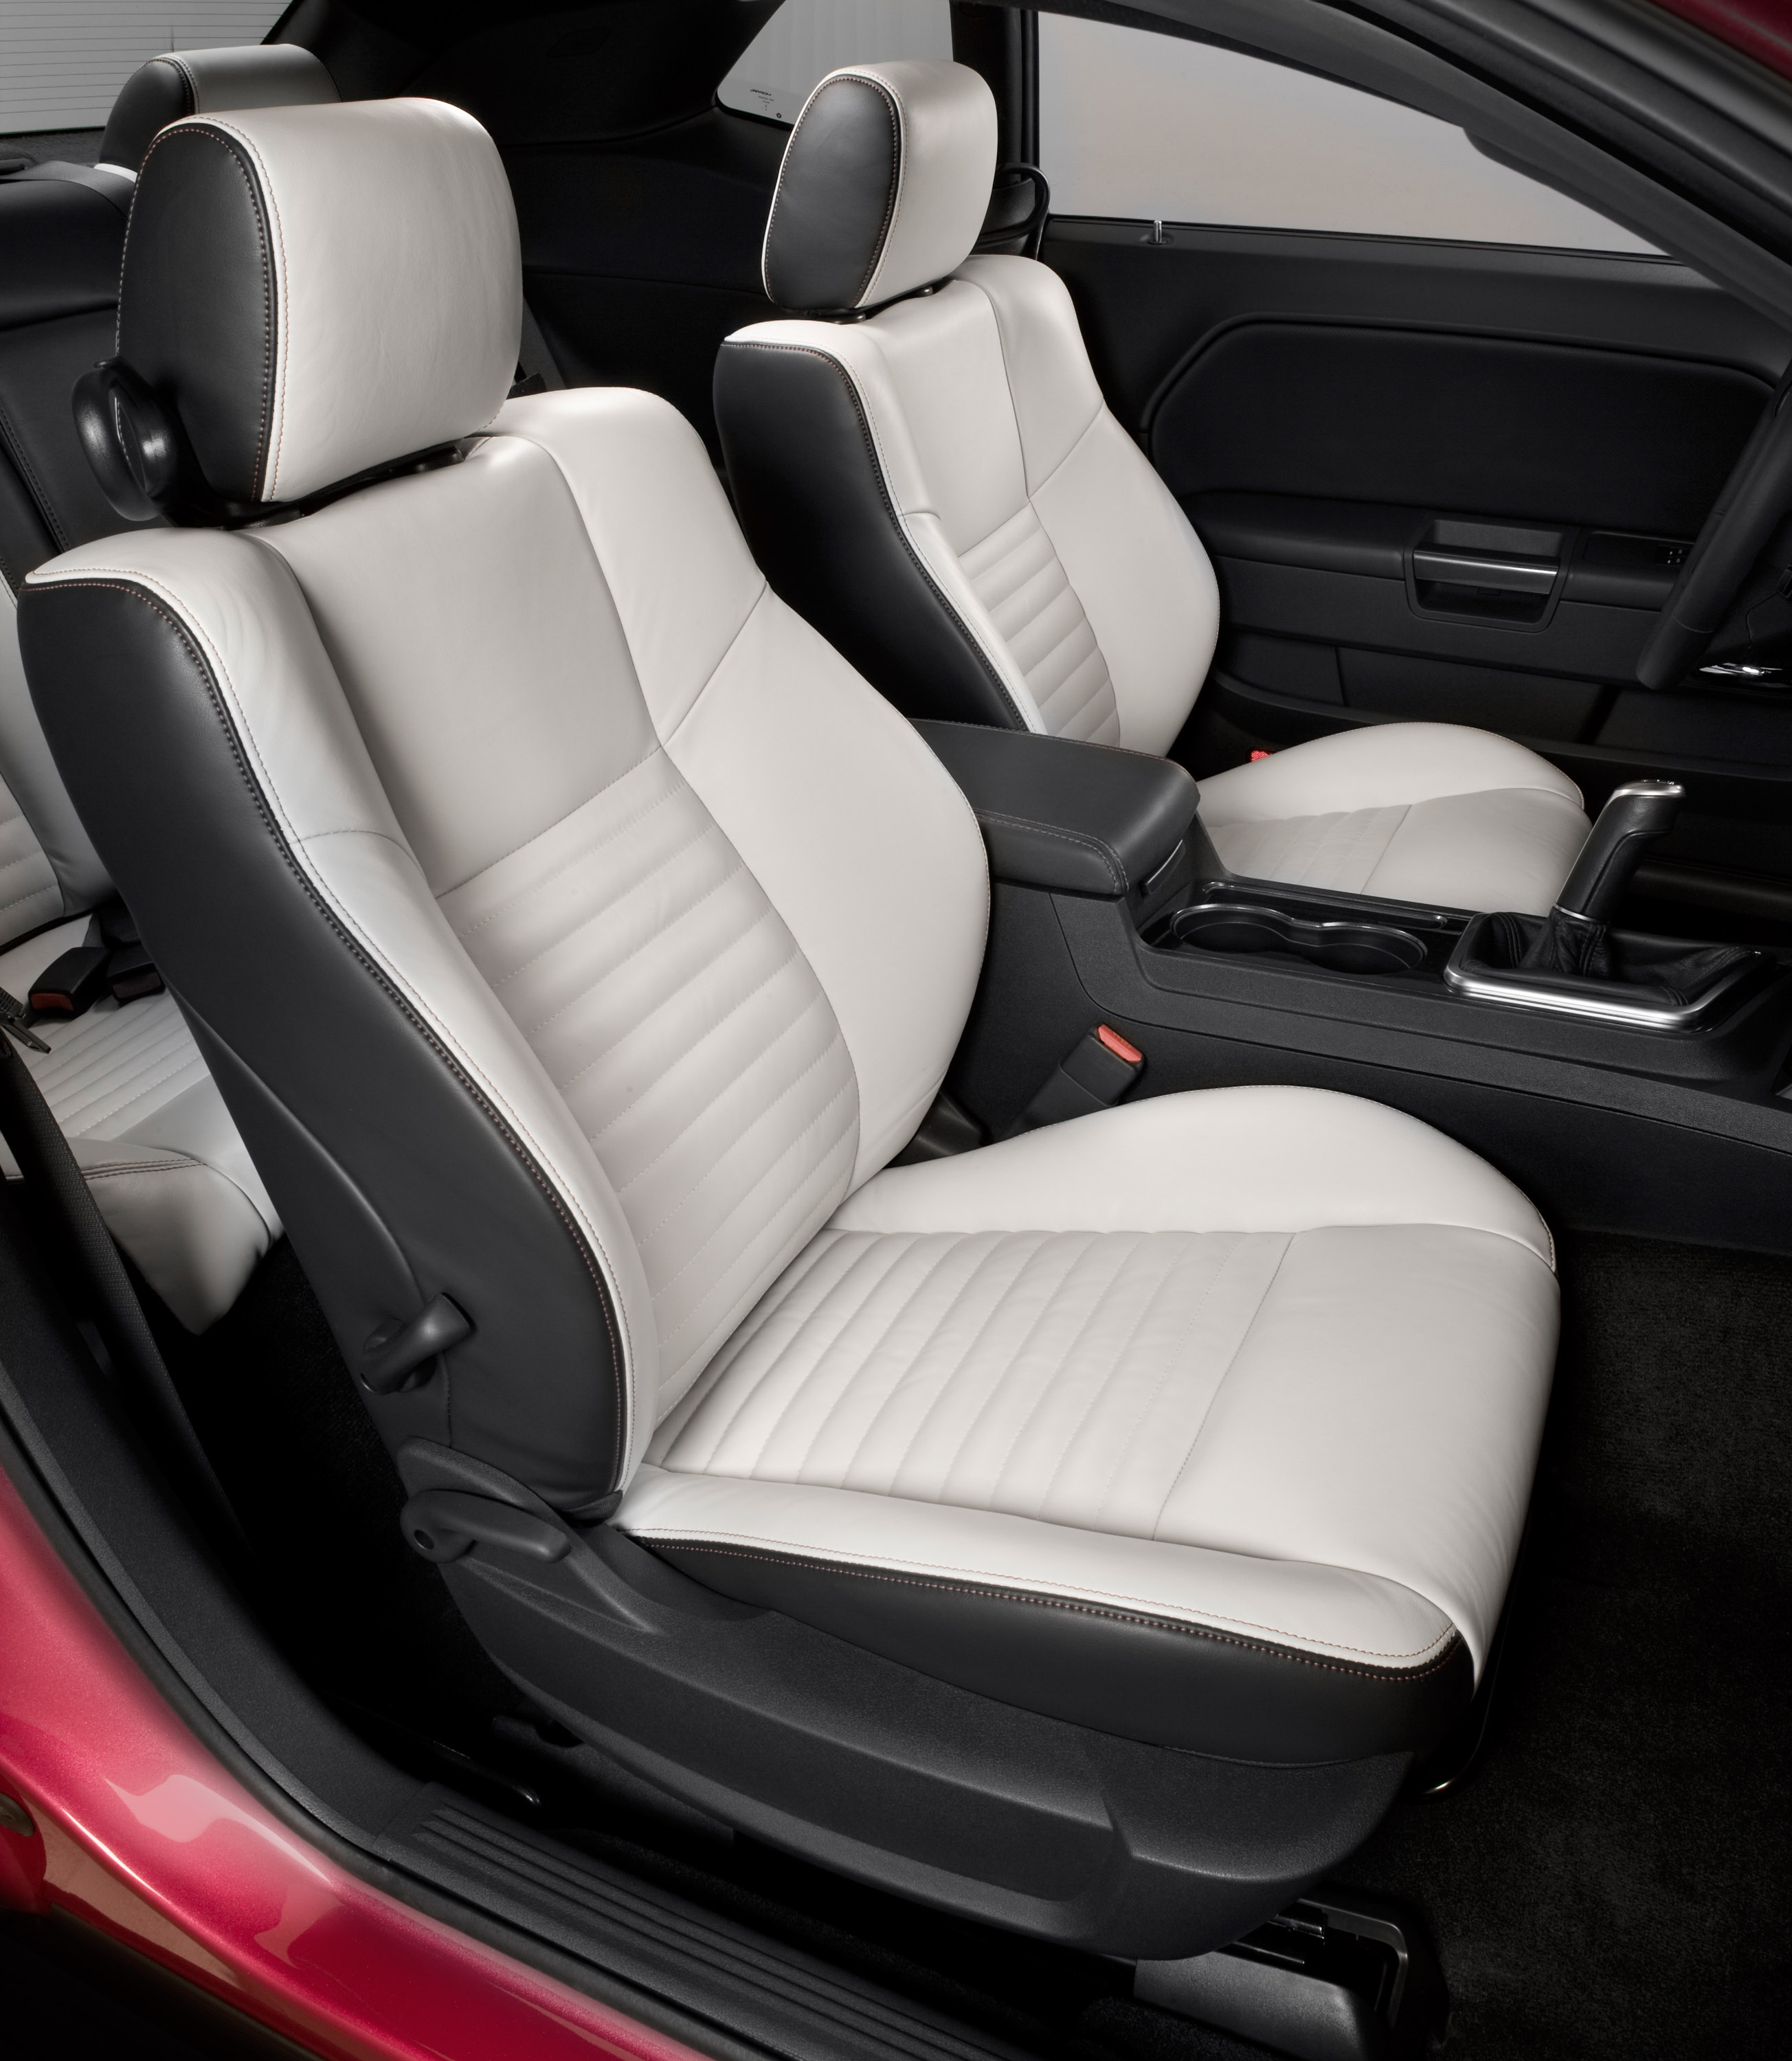 2010 Dodge Challenger Car Seat Covers Velcromag